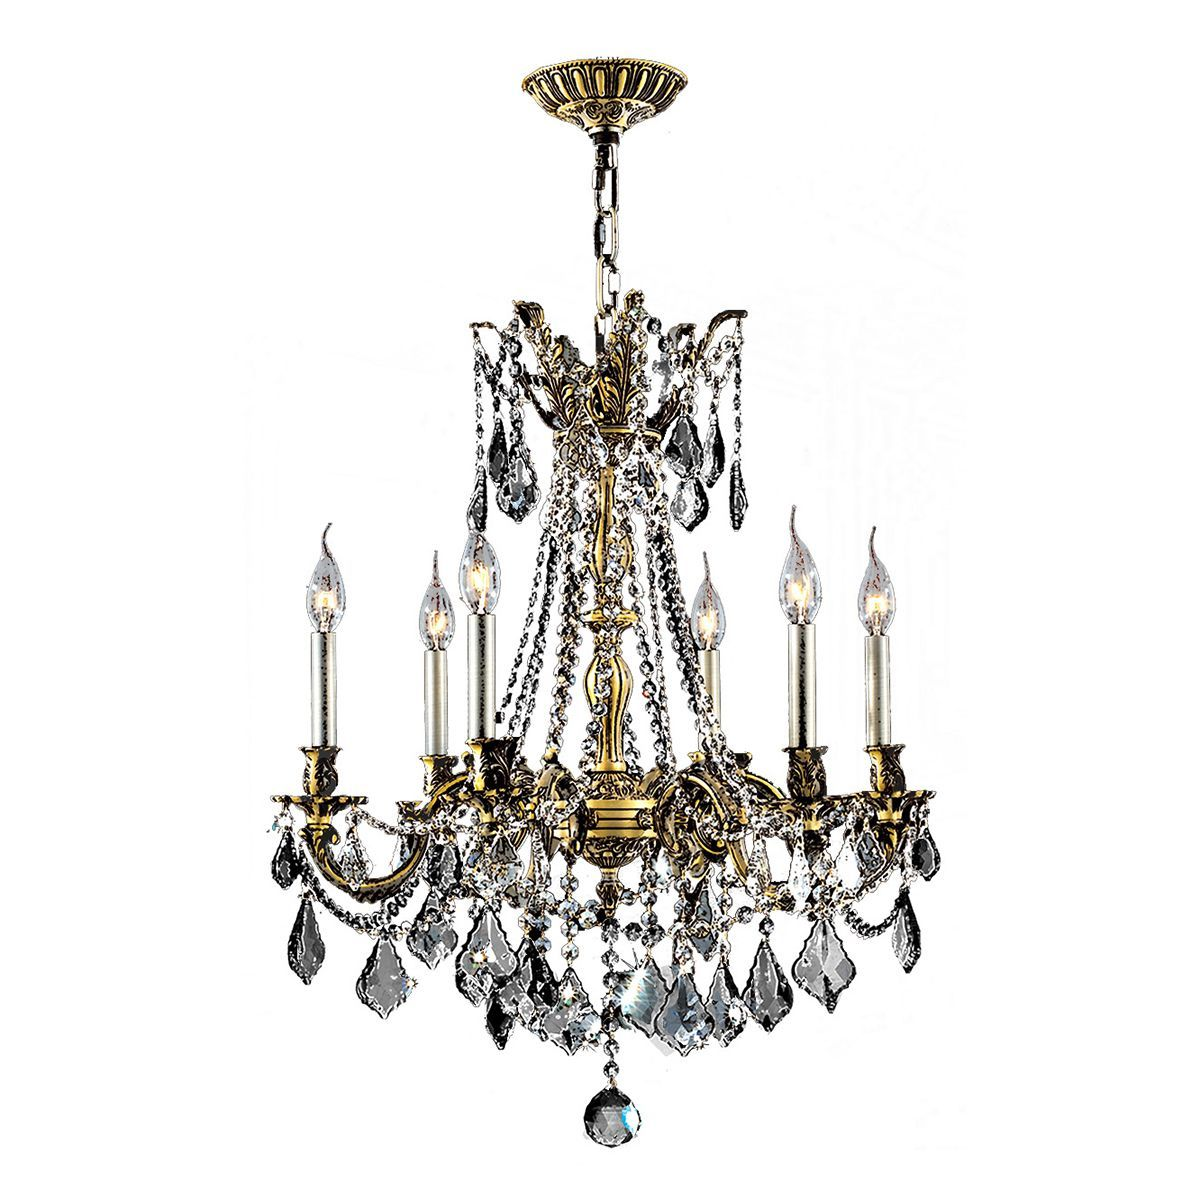 Italian elegance collection 6 light antique bronze finish crystal italian elegance collection 6 light antique finish crystal ornate chandelier 23 aloadofball Image collections